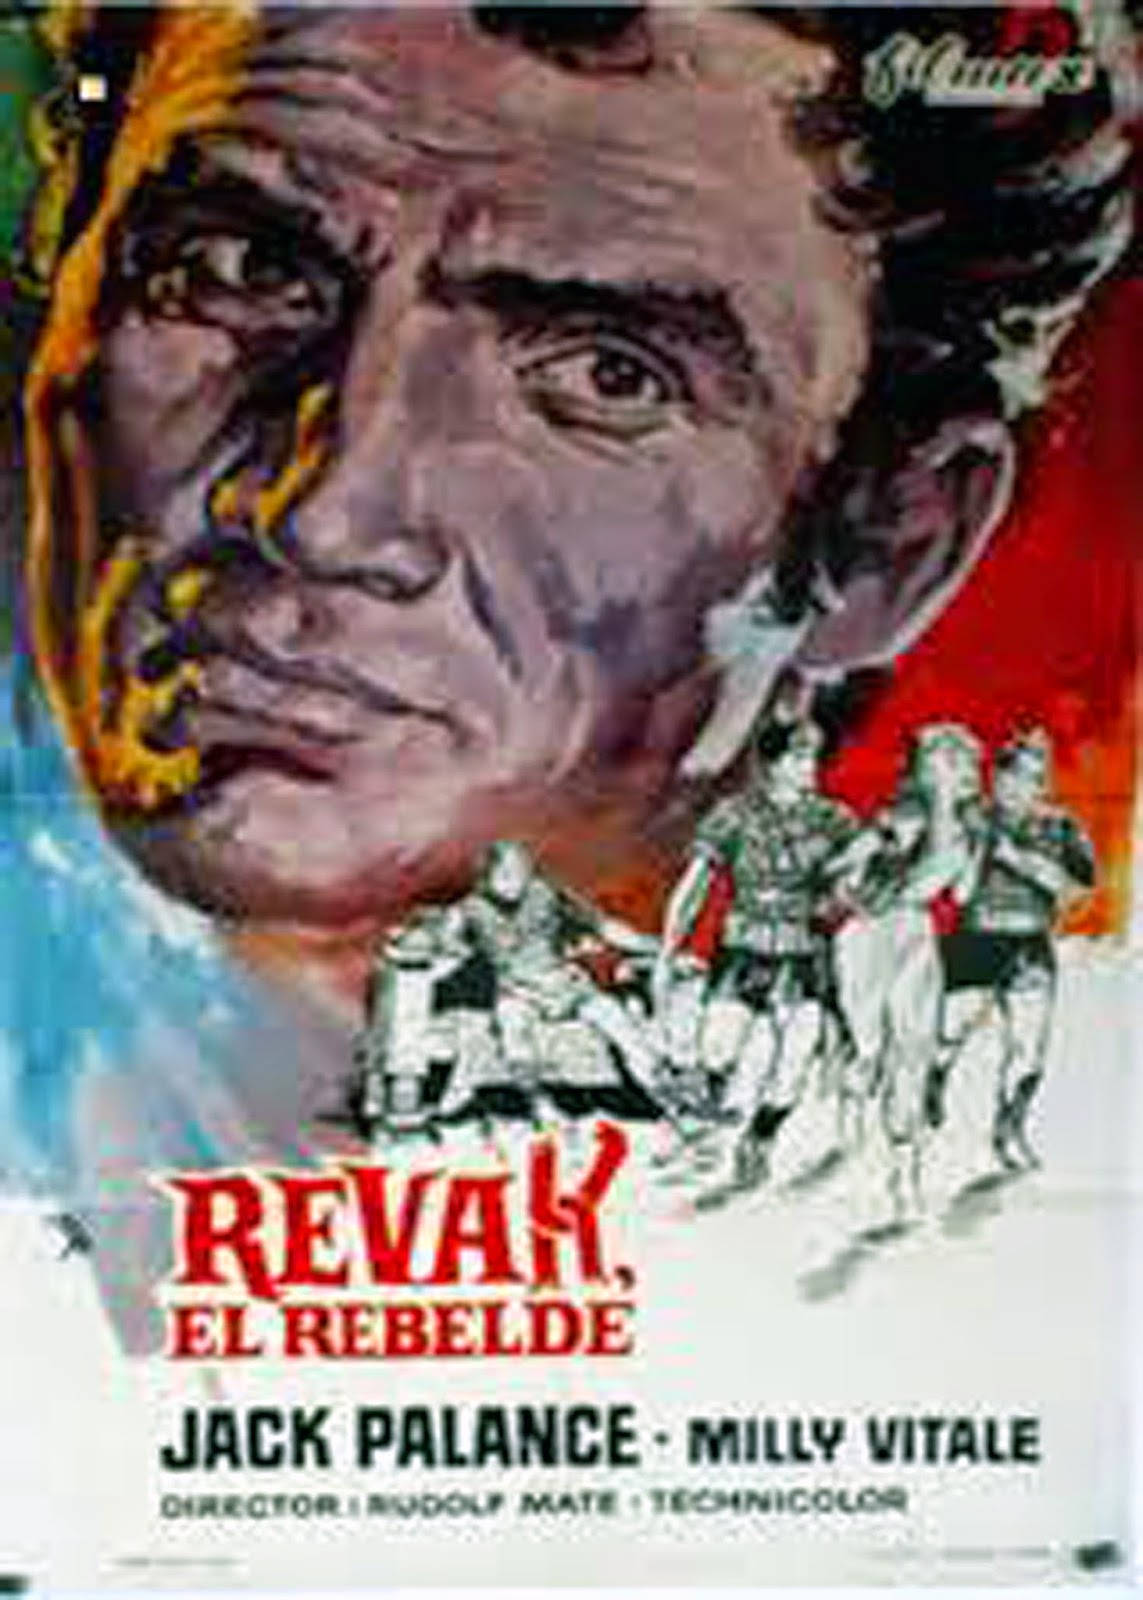 Revak, el rebelde (1960)